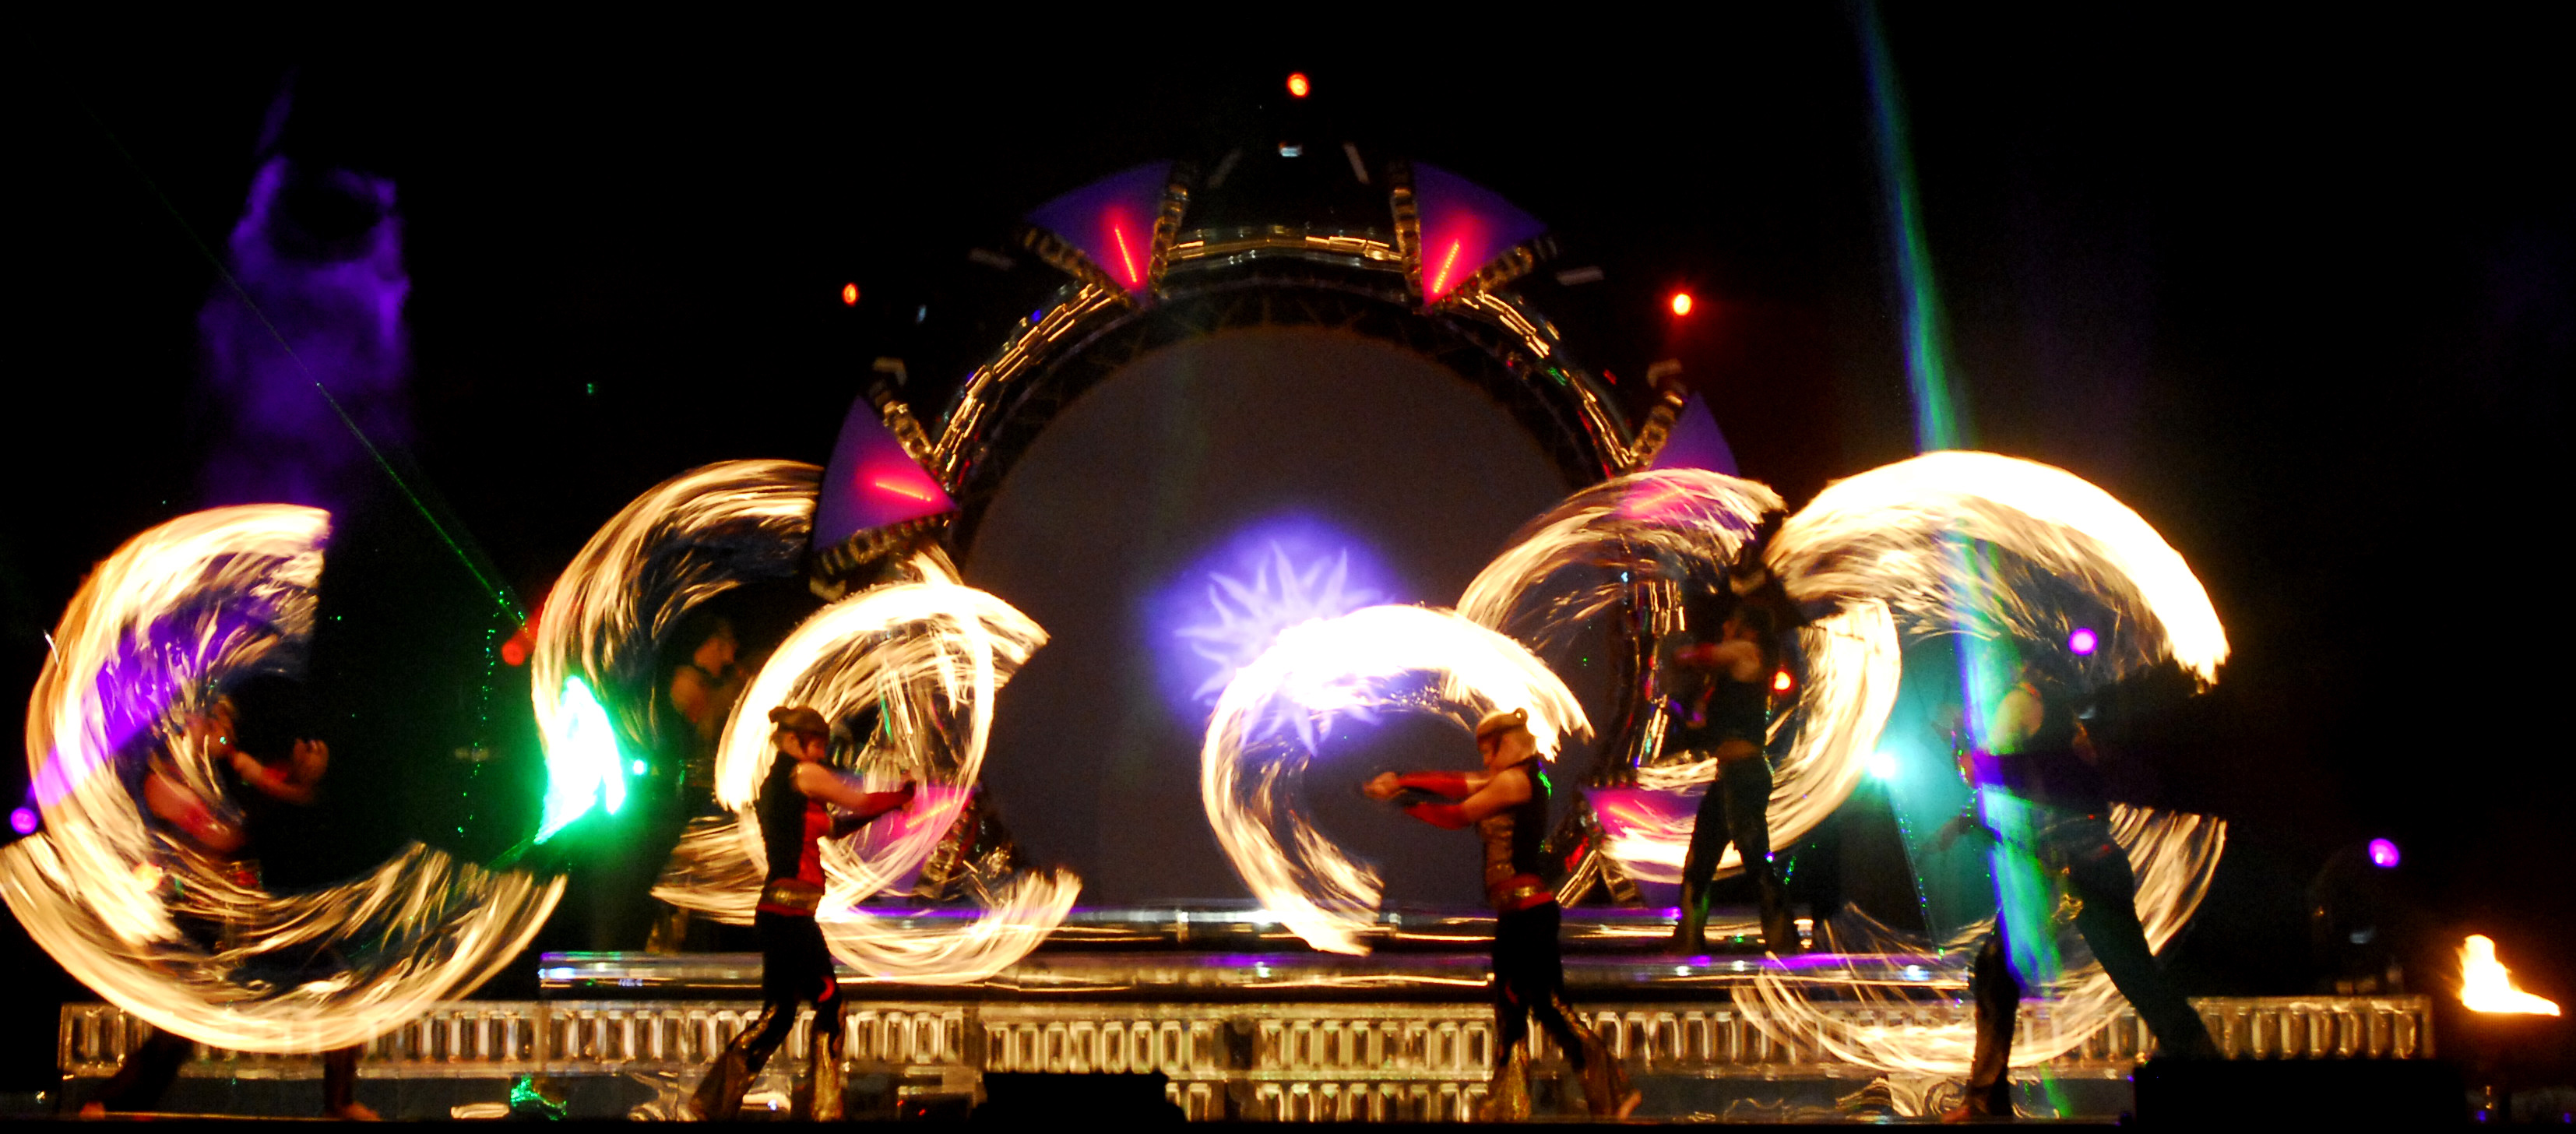 LED Pyro Stage Show for Events - Streets United